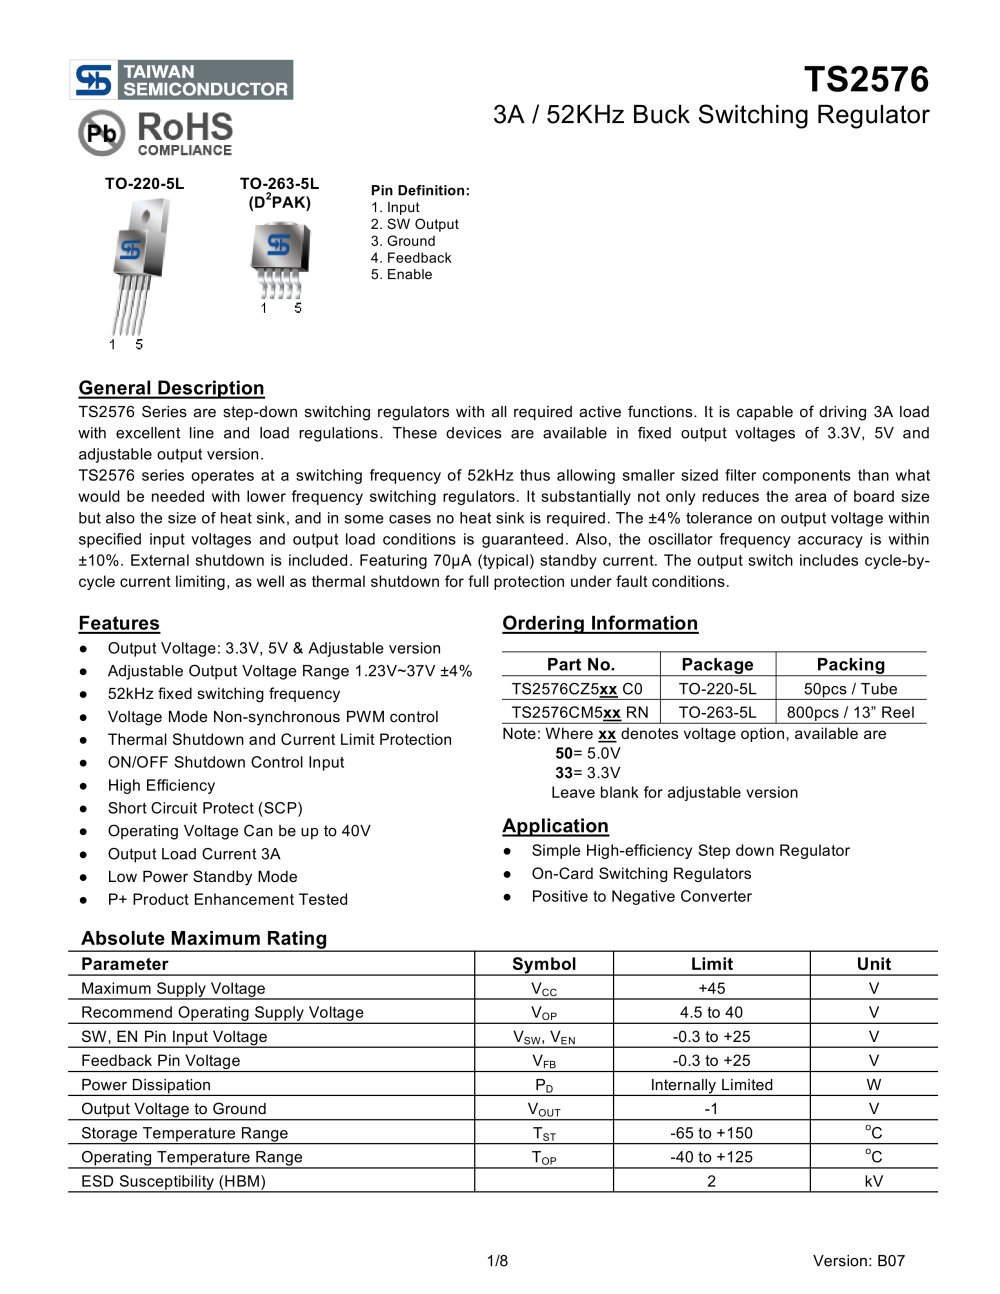 Ts2576 3a 52khz Buck Switching Regulator Taiwan Semiconductor Power Supply With Current Limiter And Stand Alone 1 8 Pages